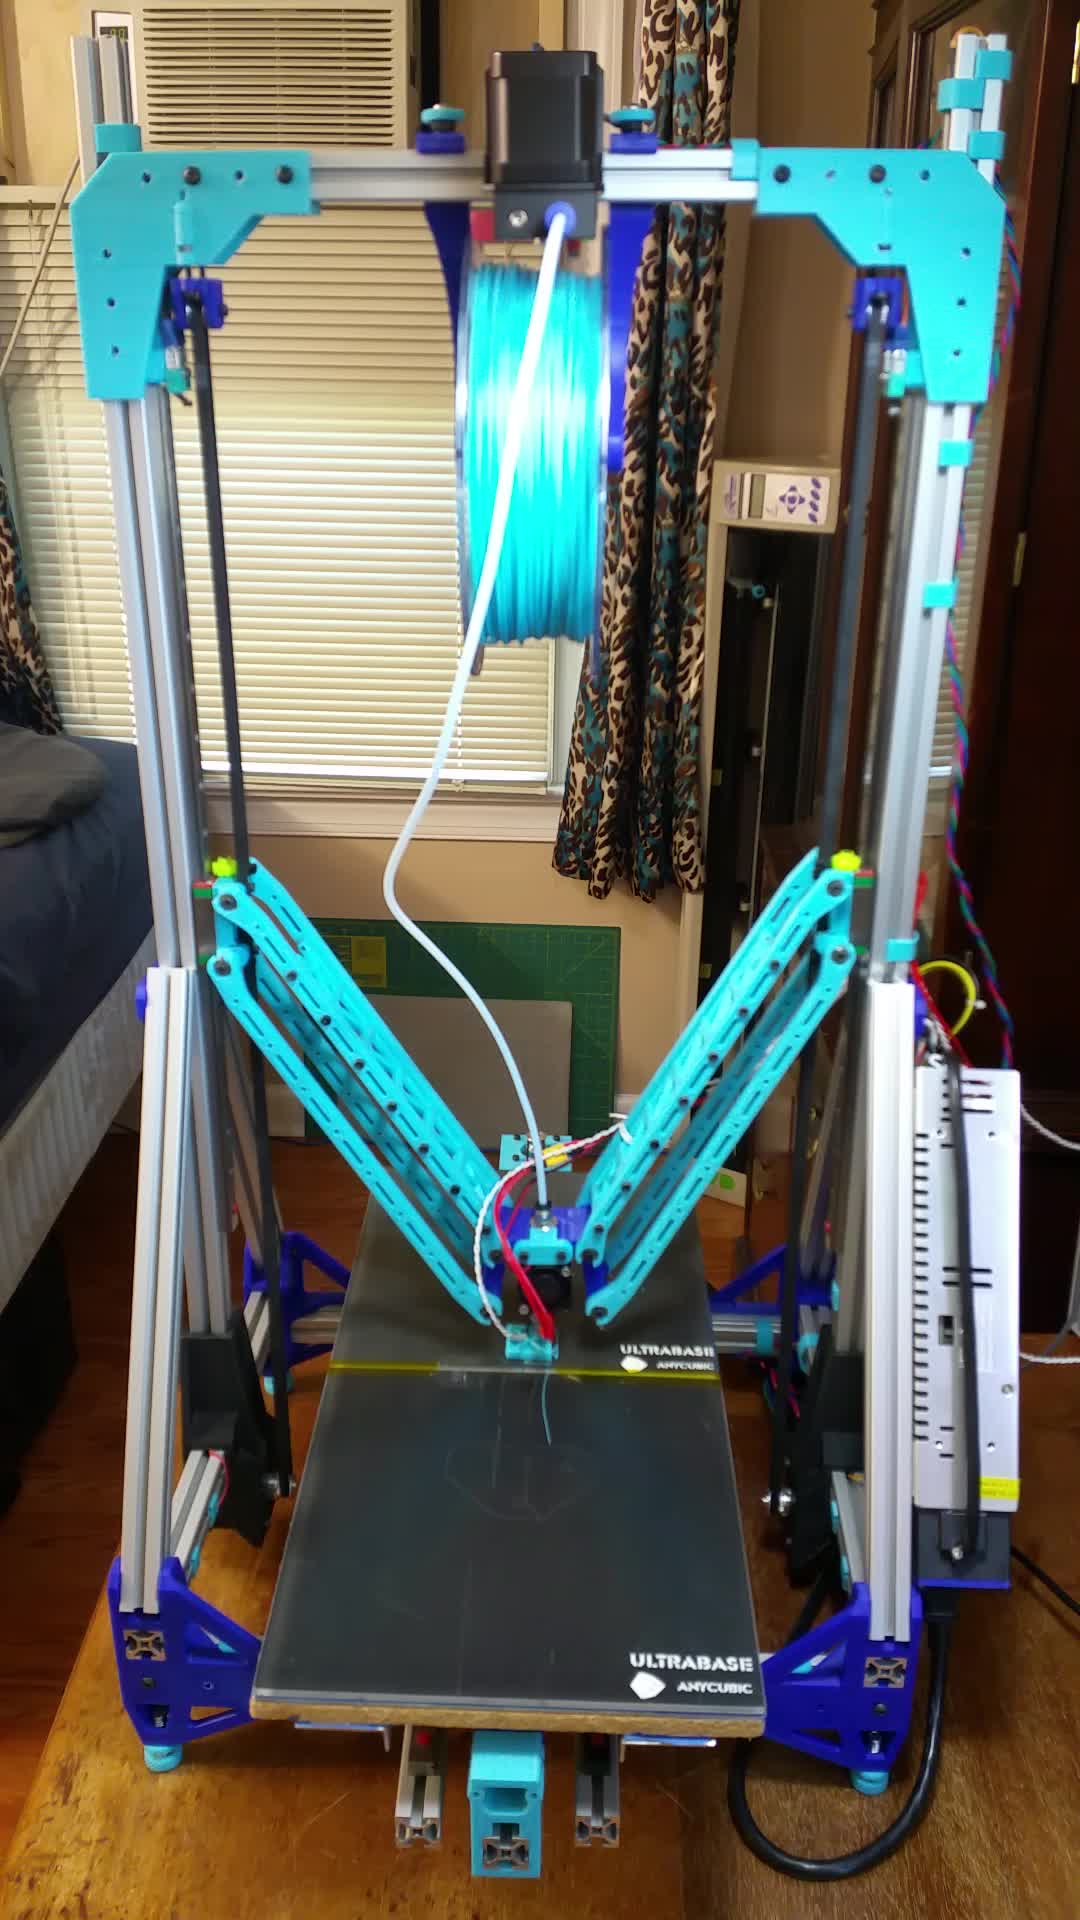 3D Printer, 3D Printing, Deltesian, Delteisan - Double Bed Lives Again GIFs